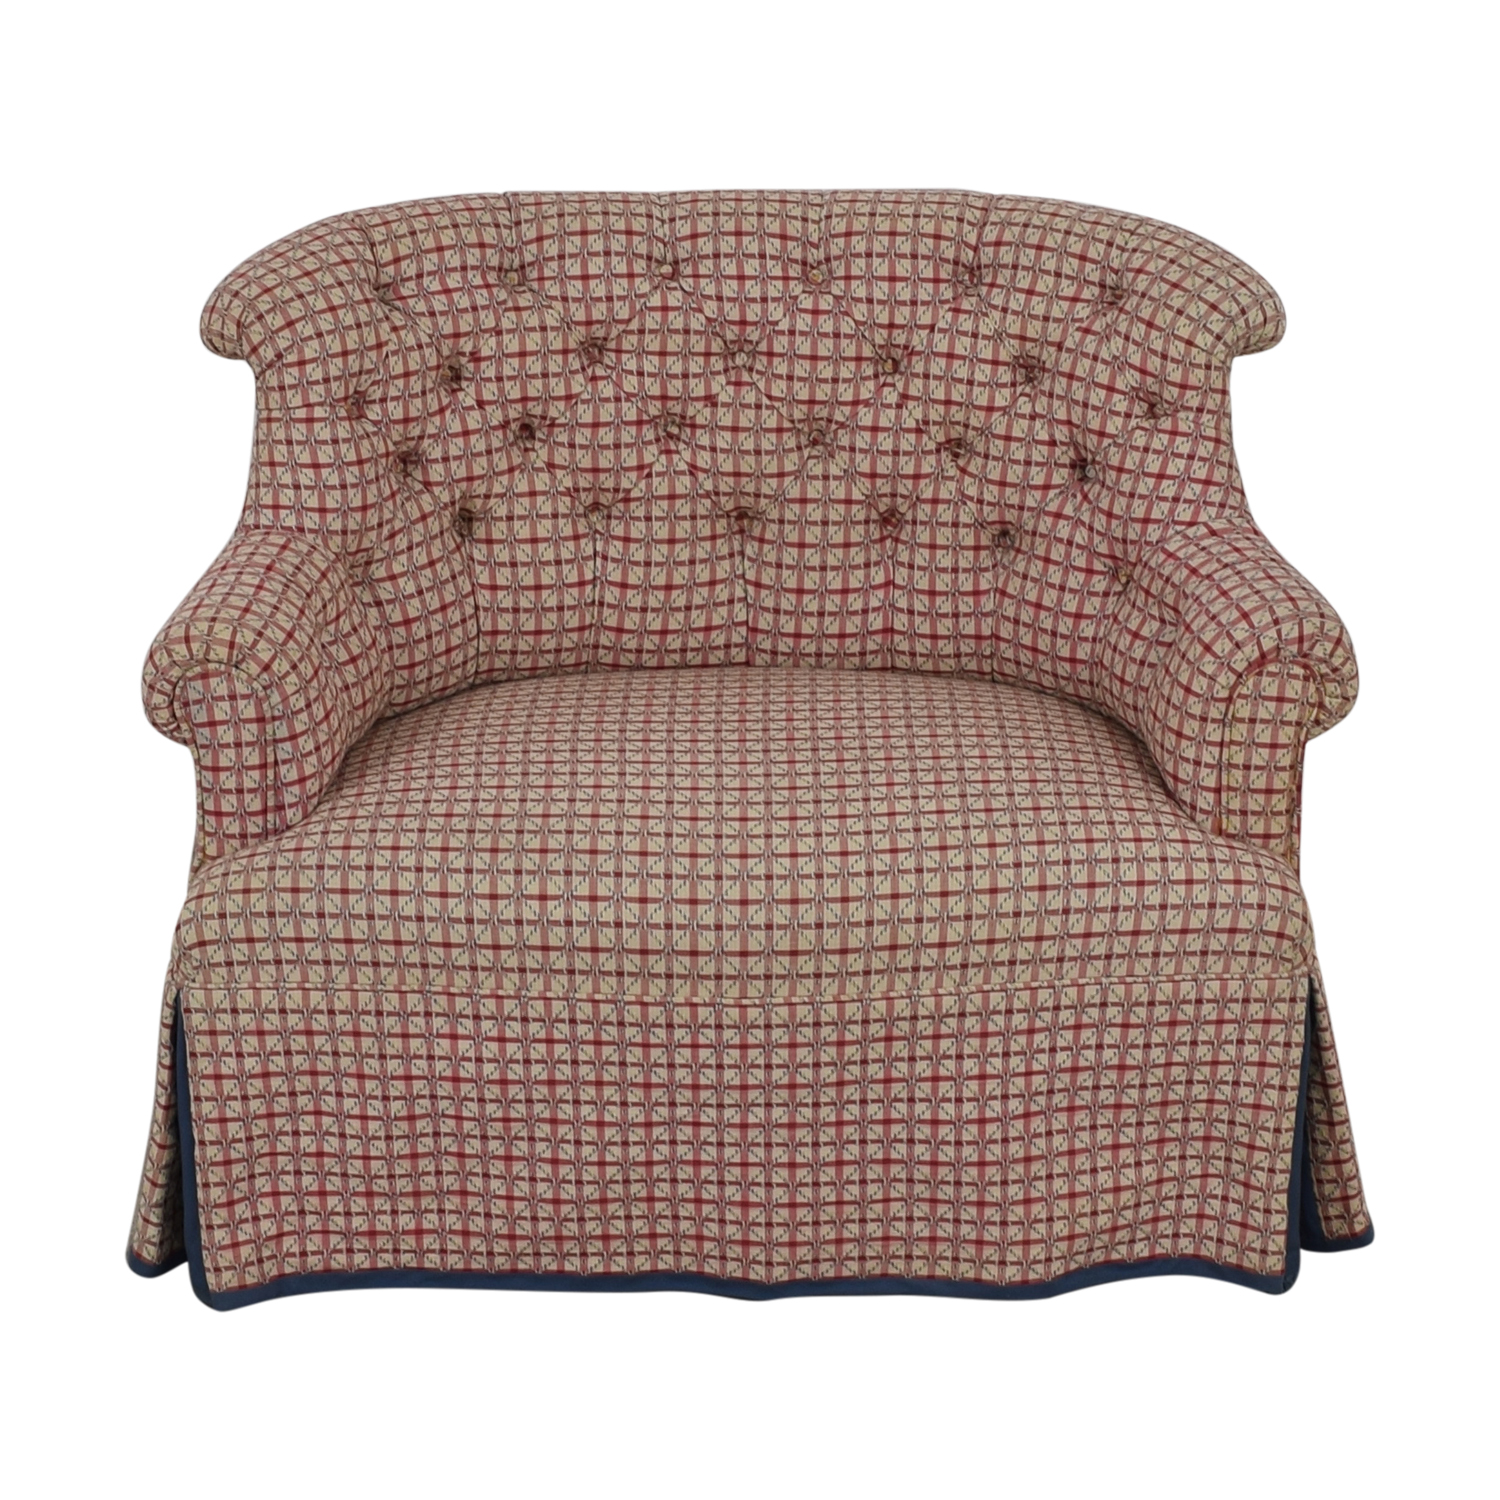 Outstanding 90 Off Furniture Masters Furniture Masters Red And White Plaid Tufted Accent Chair Chairs Gmtry Best Dining Table And Chair Ideas Images Gmtryco